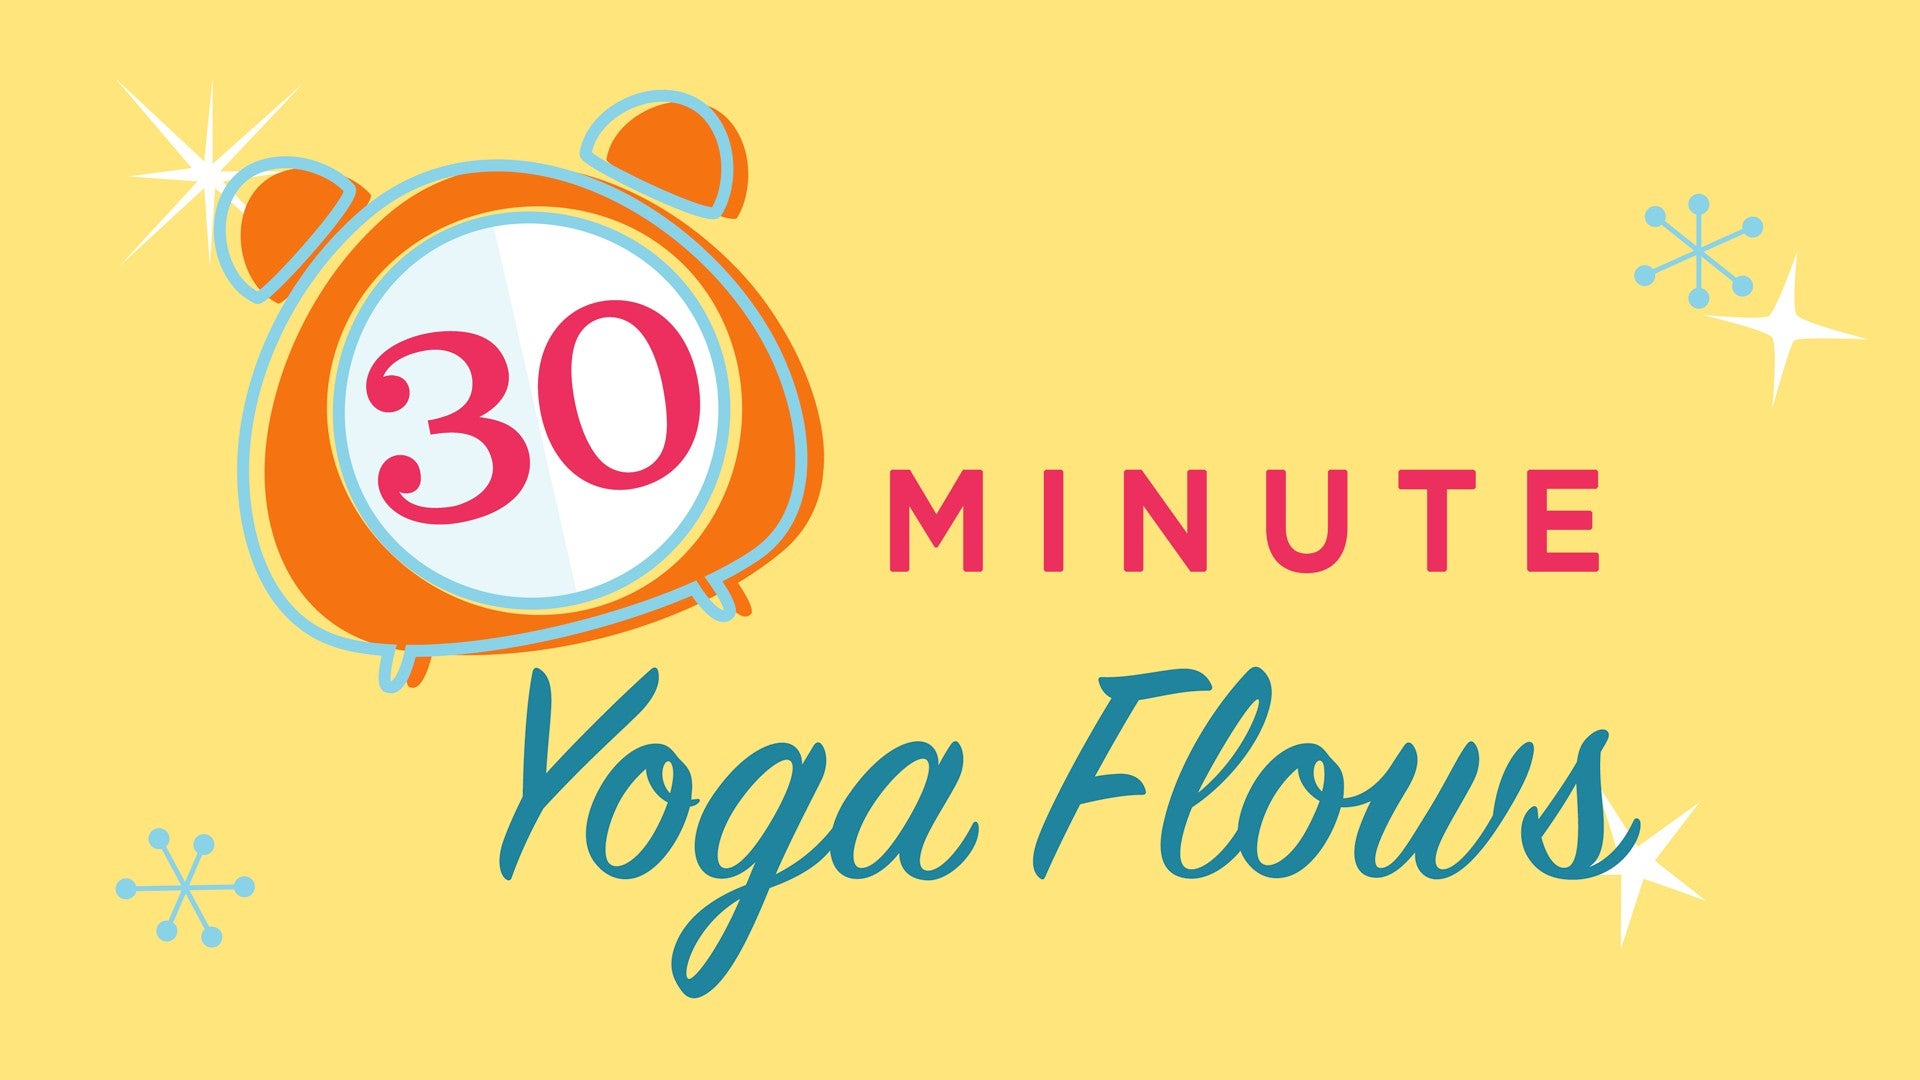 30 Minute Yoga Flows Artwork